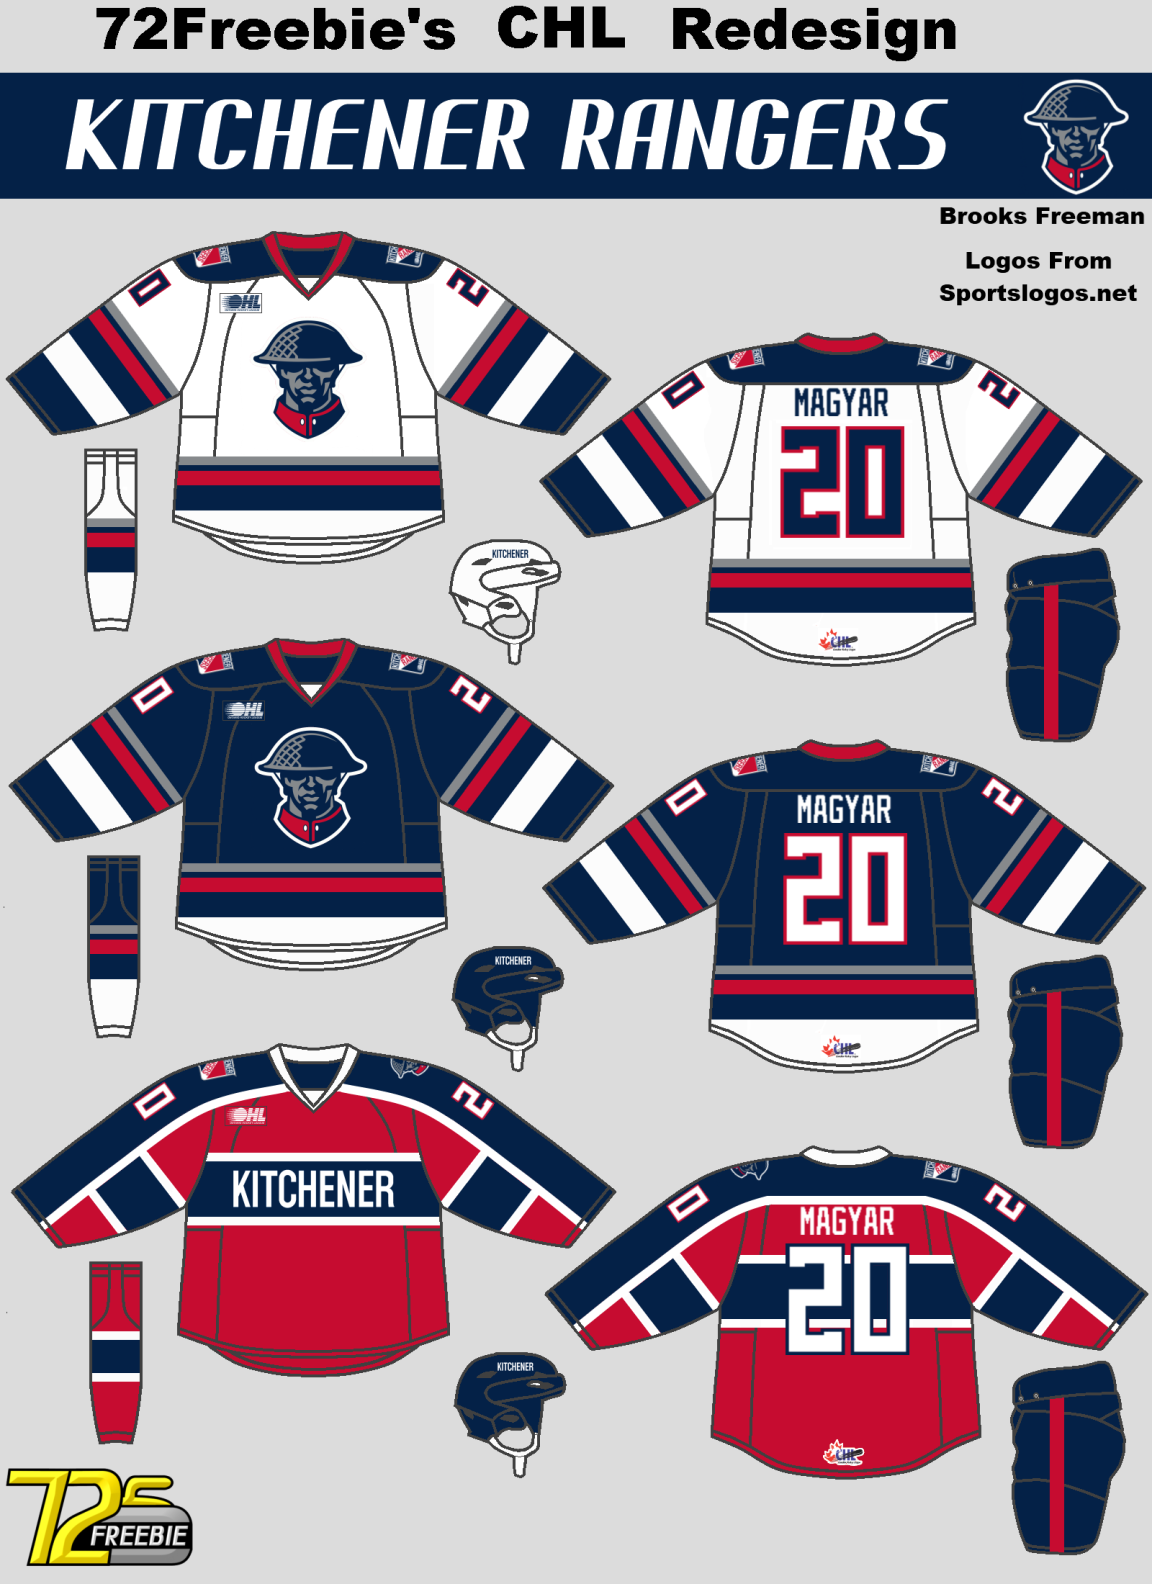 Monday: 3 Stars of the First Round - HockeyJerseyConcepts